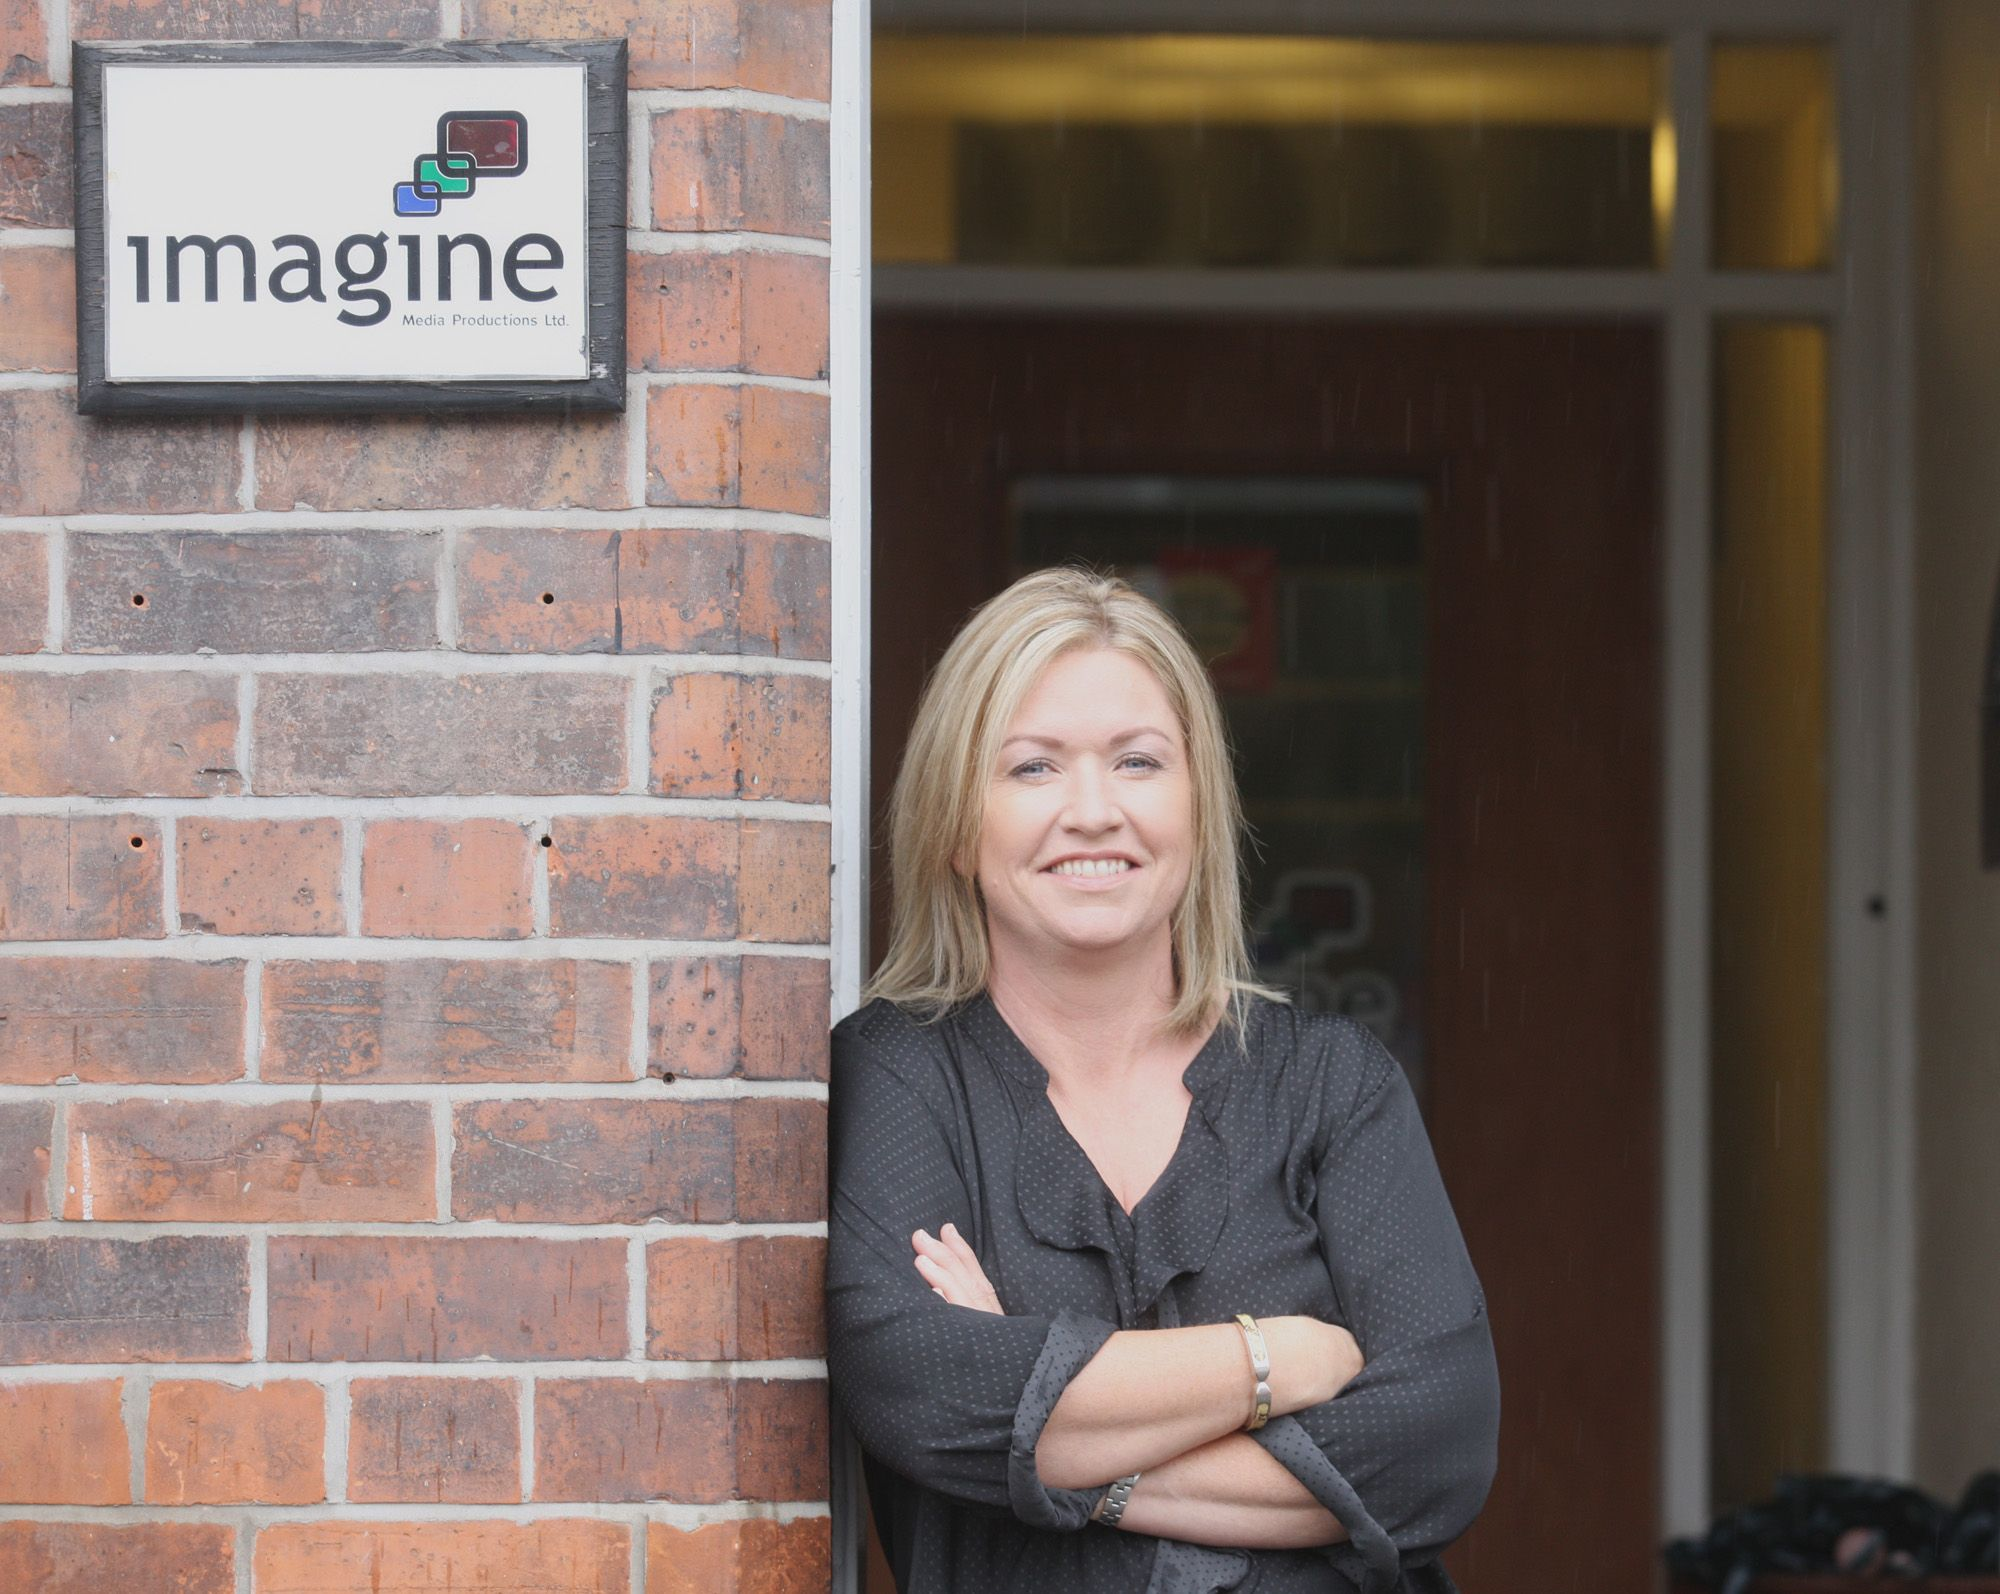 GREAT NEWS: Sheila Friel from independent TV company Imagine Media